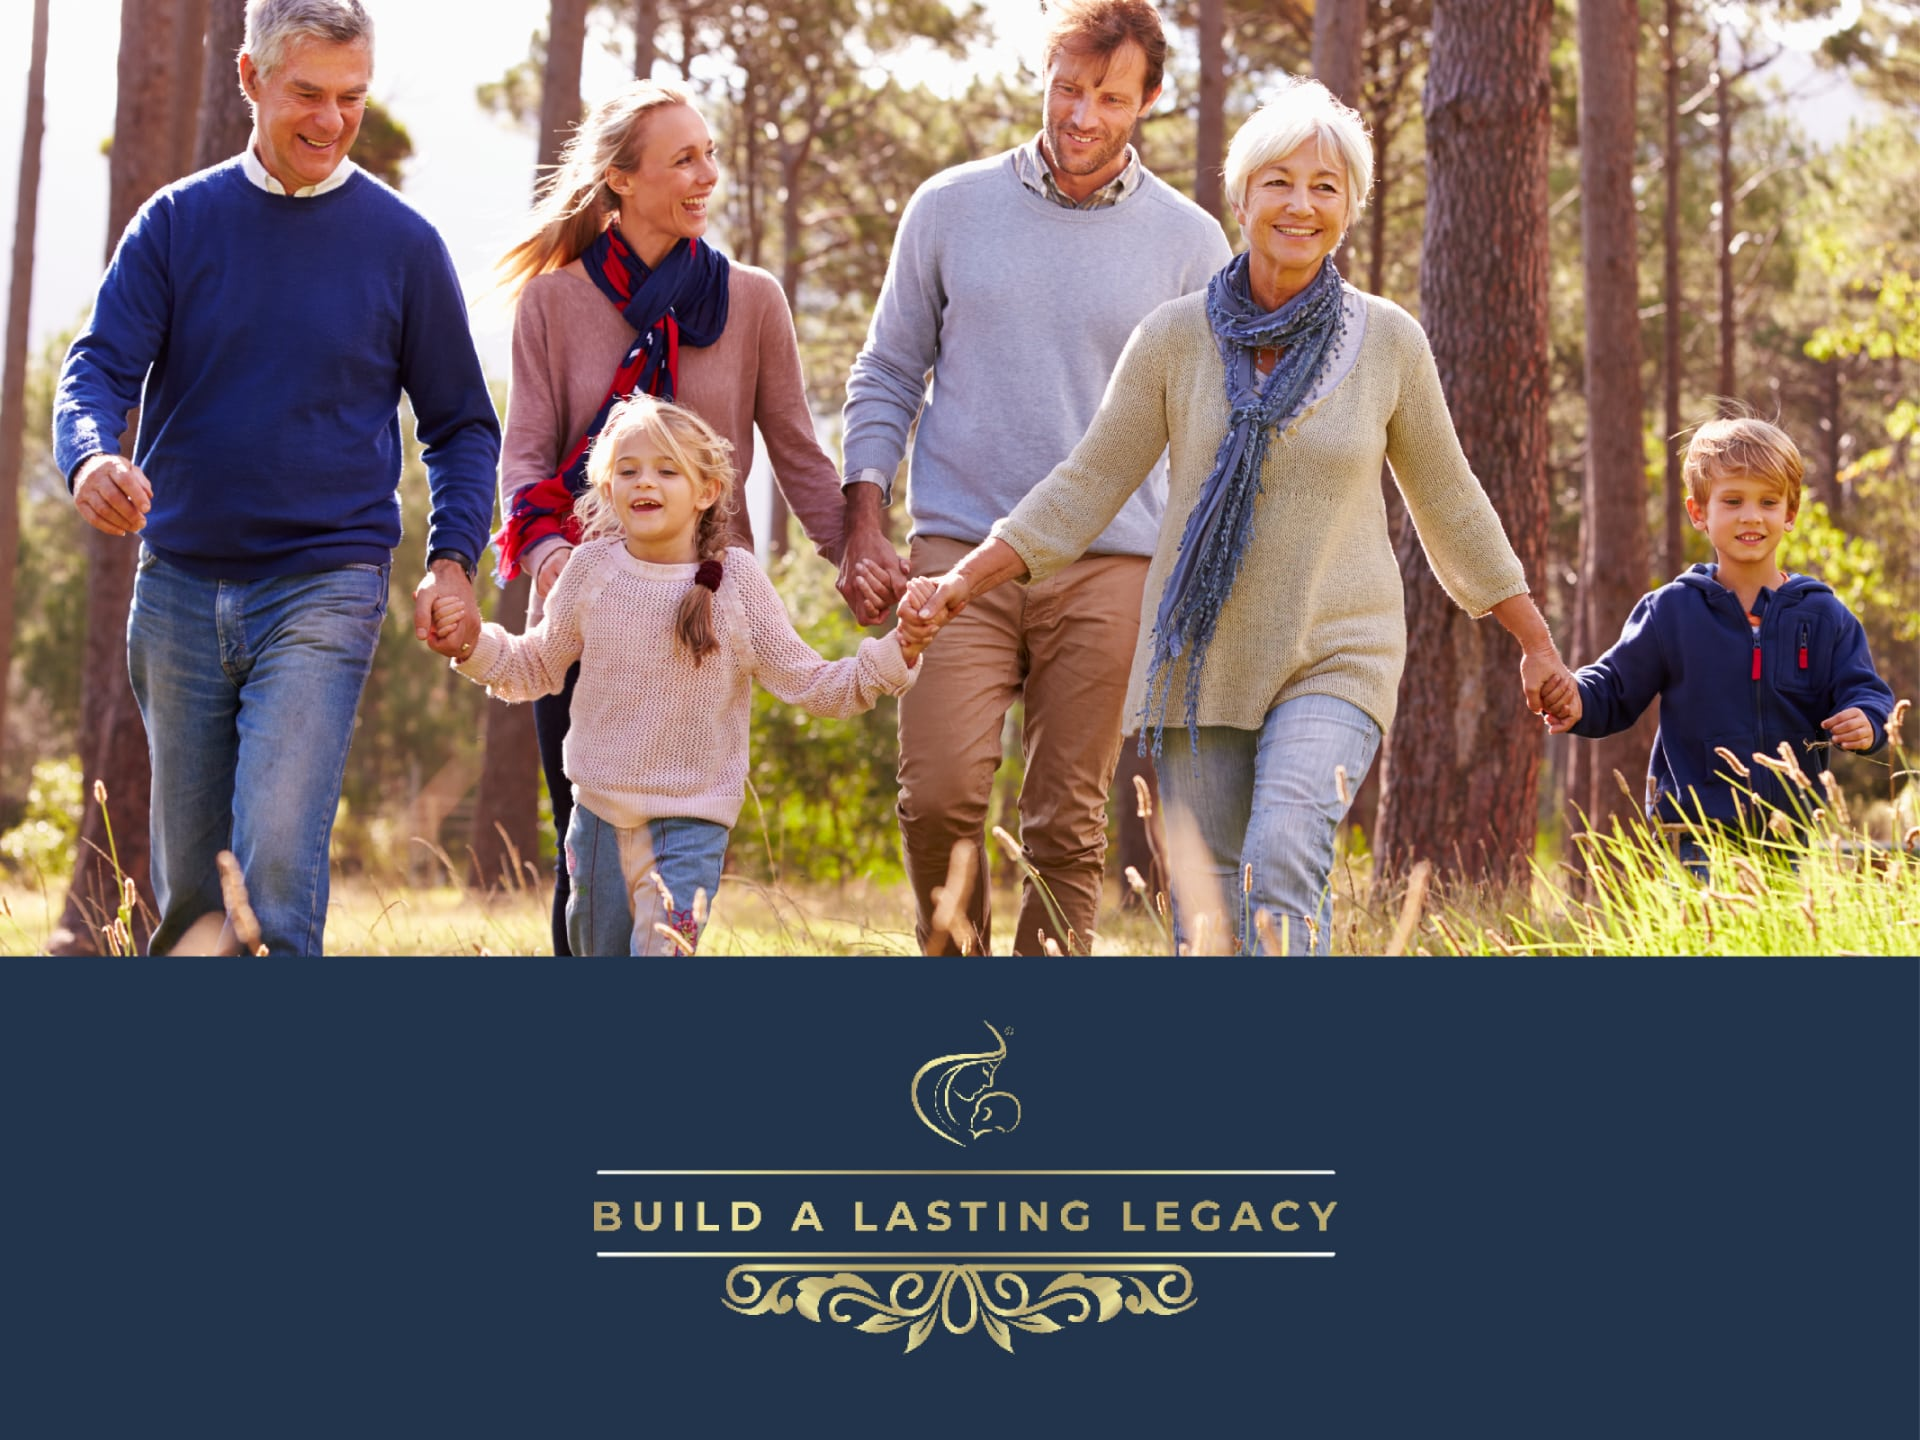 Grandparents, Kids and Grand Kids Walking Together - Build a Lasting Legacy